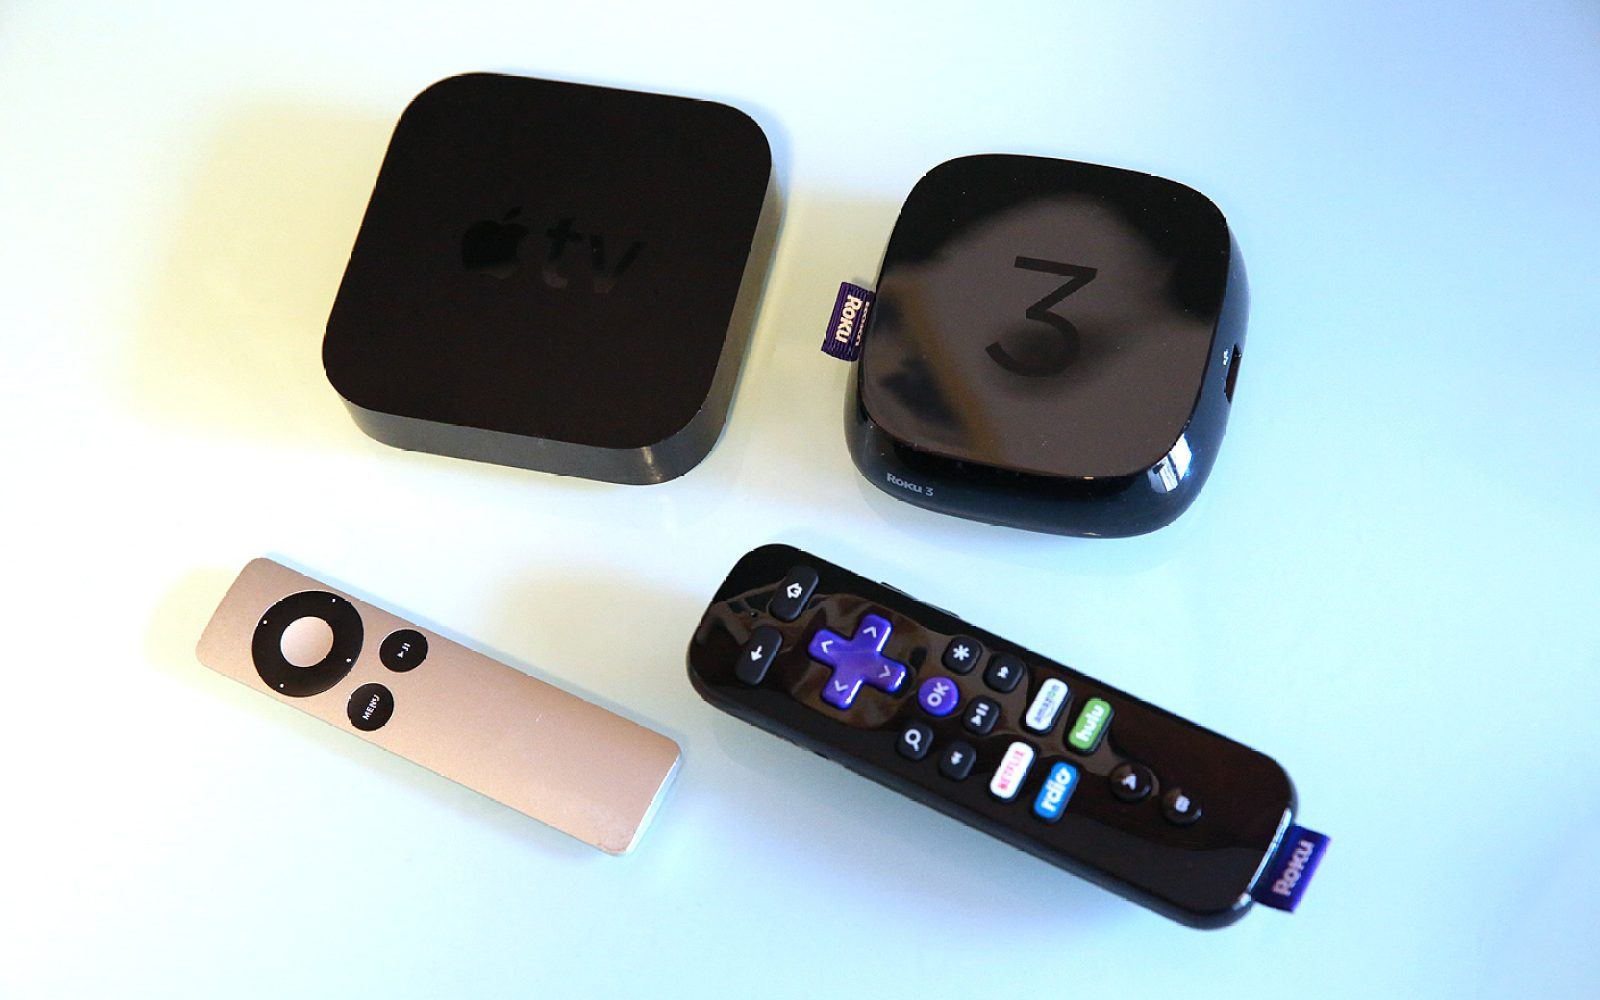 Opinion  Roku s new media players use voice search and apps to make Apple  TV feel old c7ad5e5ec8e4a